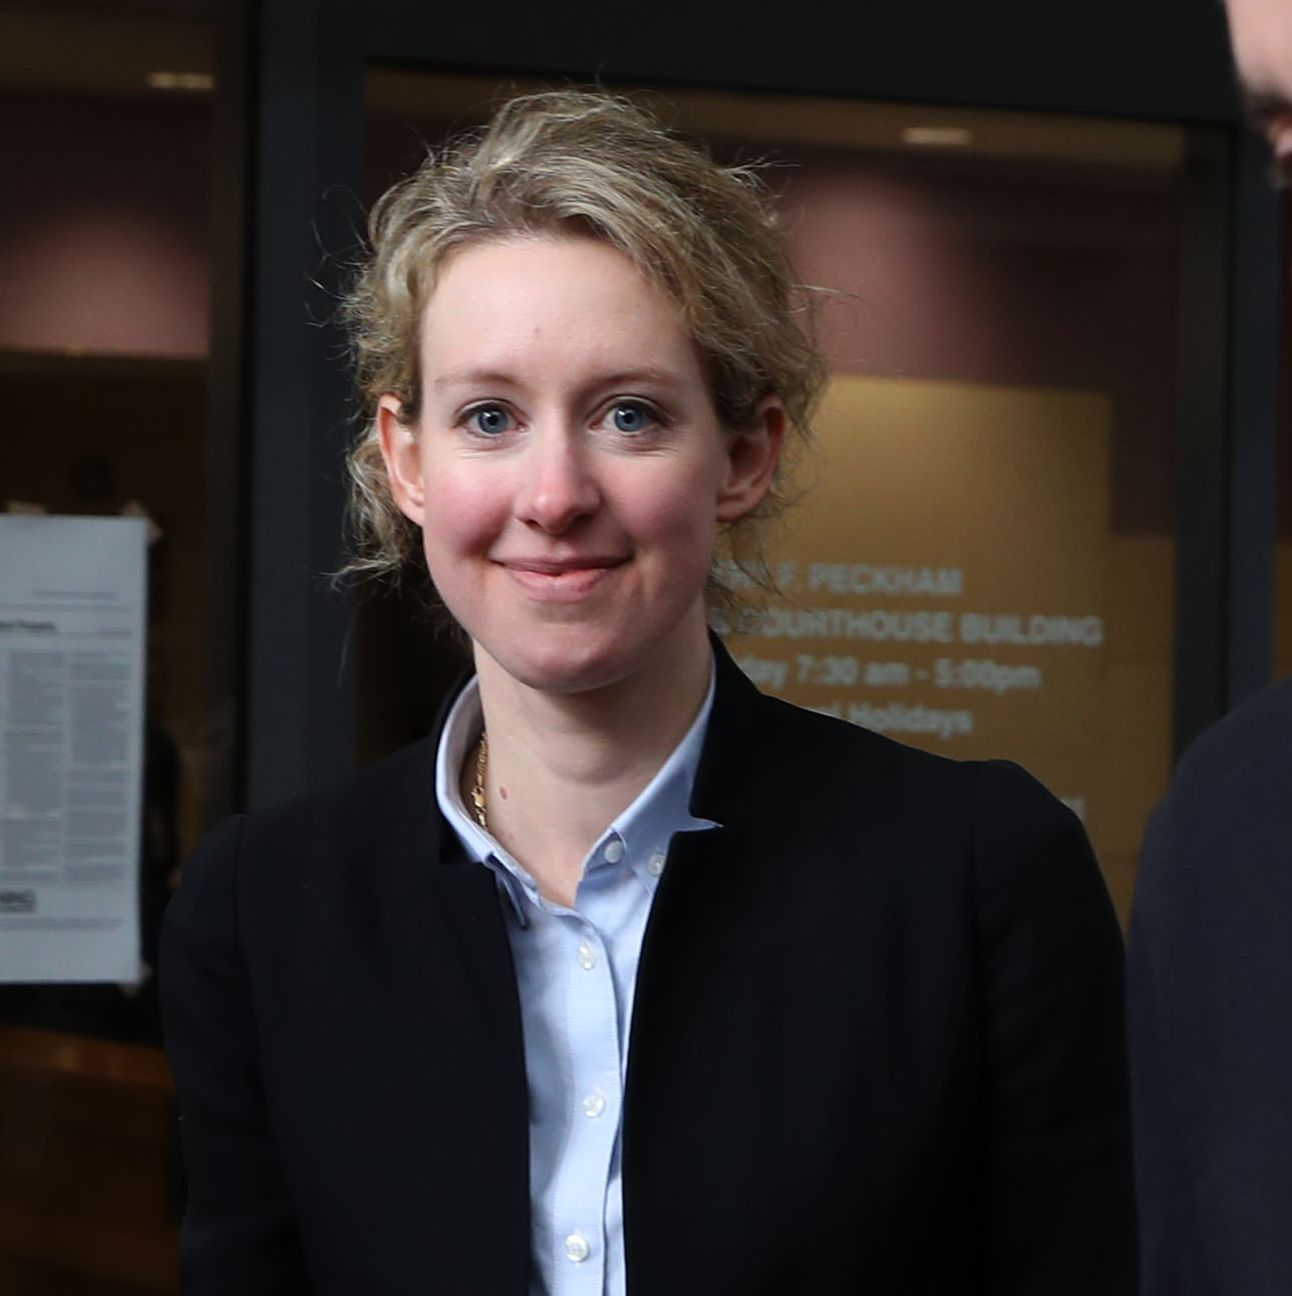 Today, Elizabeth Holmes Awaits Her Fraud Trial. But She Reportedly Remains 'Chipper.'